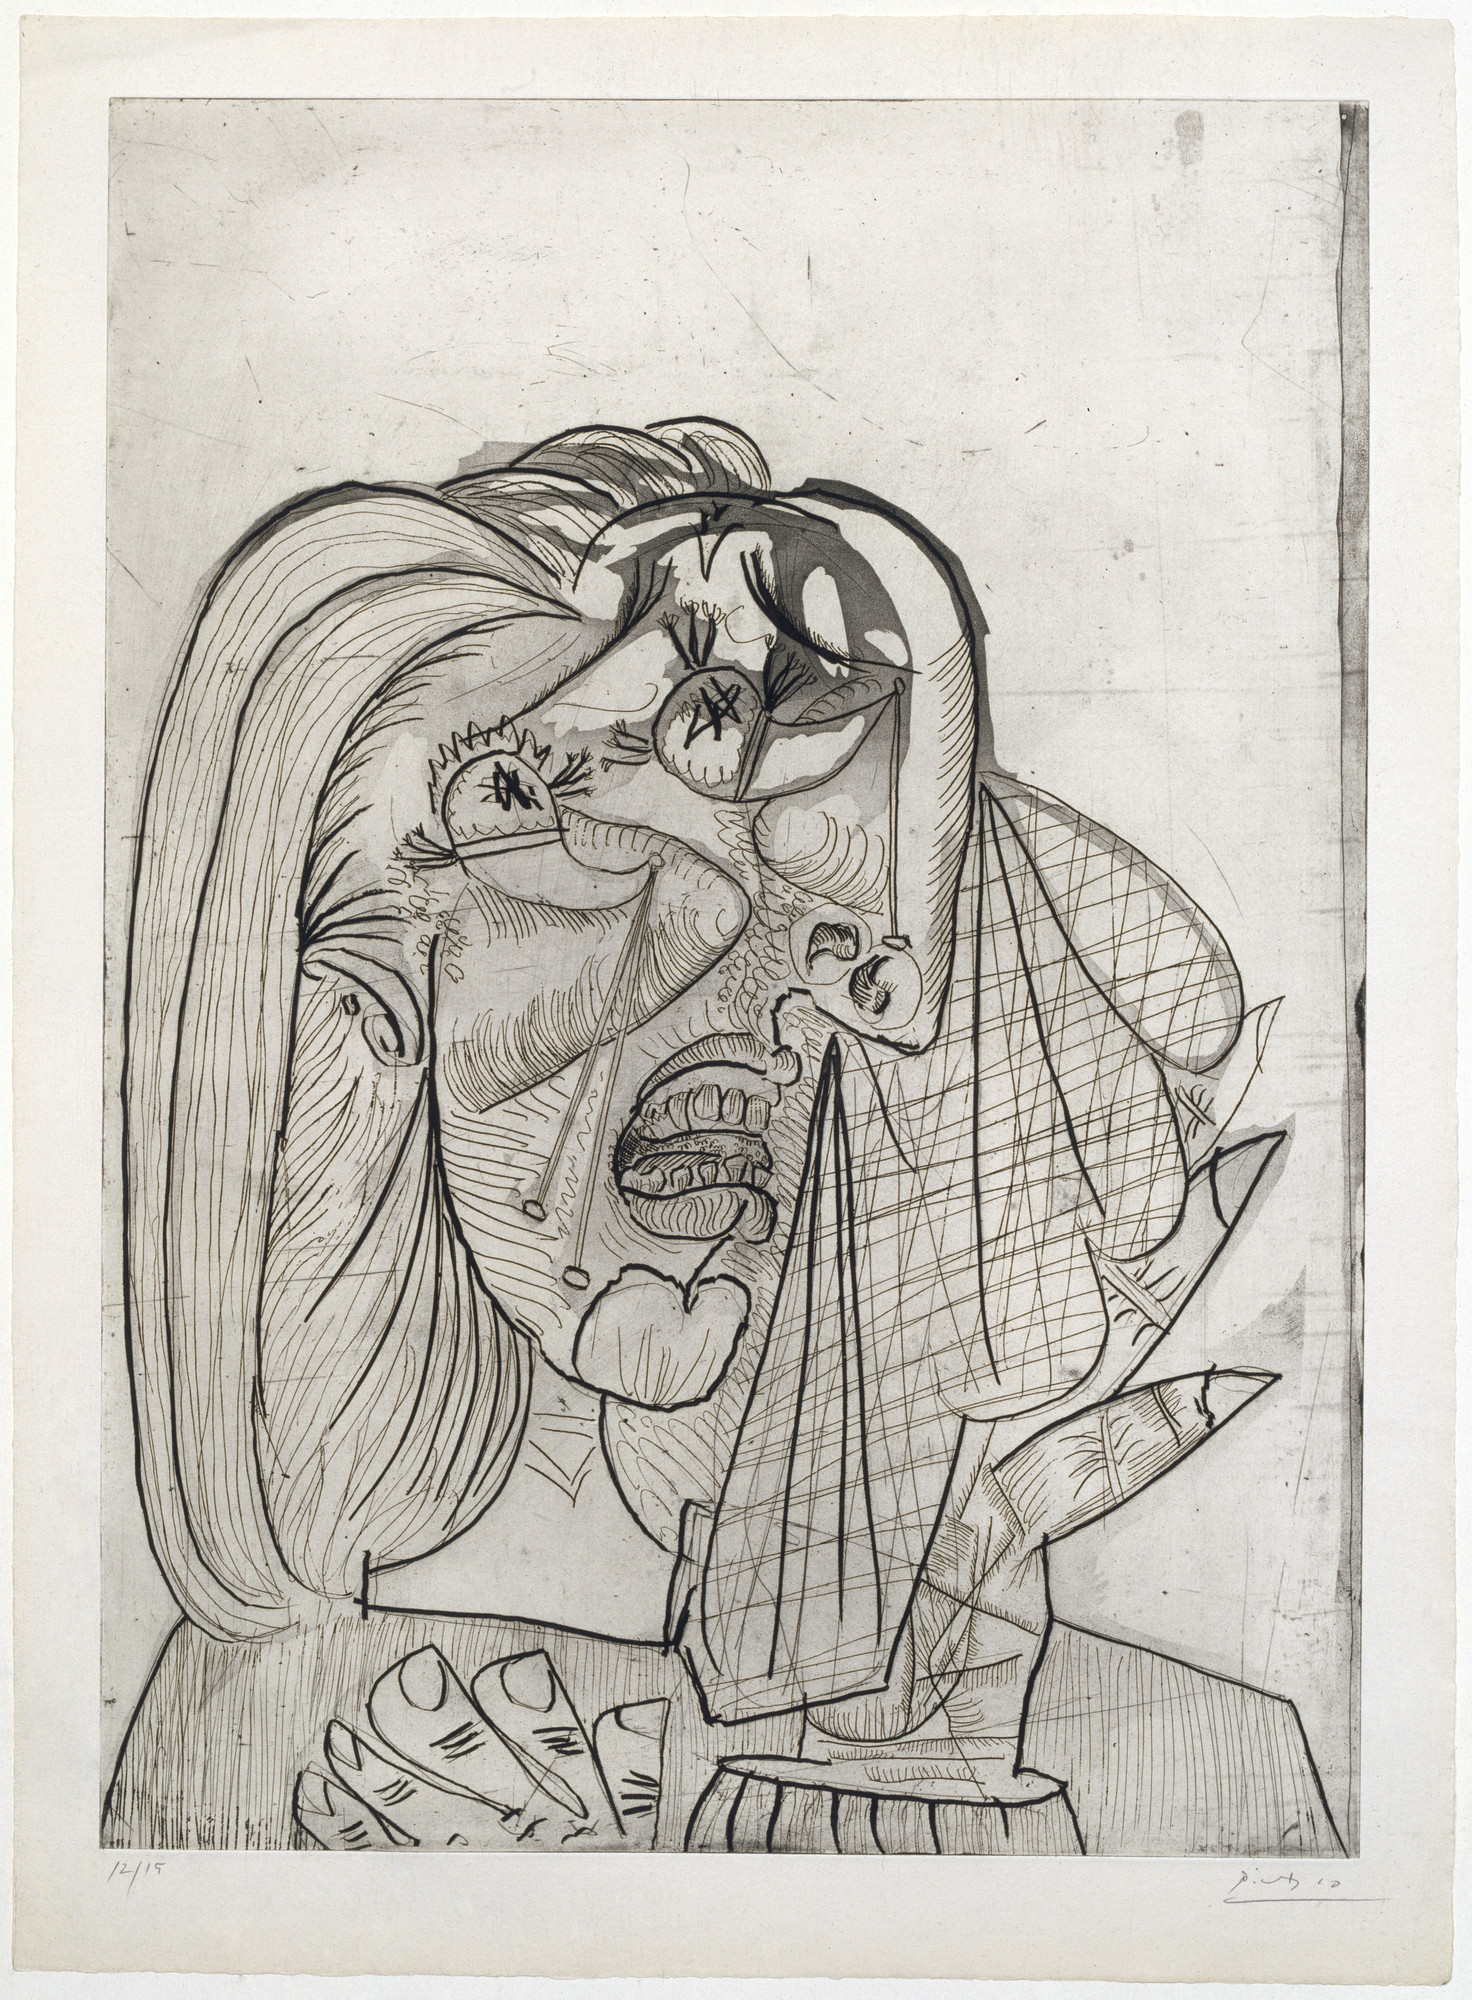 Pablo Picasso. The Weeping Woman, I (La Femme qui pleure, I), State III. July 1, 1937. Drypoint, aquatint, etching, and scraper; plate: 27 1⁄8 × 19 1/2″ (68.9 × 49.5 cm); sheet: 30 5⁄16 × 22 5/16″ (77 × 56.7 cm). Publisher: the artist, Paris. Printer: Lacourière, Paris. Edition: 15. Acquired through the generosity of the Katsko Suzuki Memorial Fund, the Riva Castleman Endowment Fund, David Rockefeller, The Philip and Lynn Straus Foundation Fund, and Agnes Gund and Daniel Shapiro; Linda and Bill Goldstein, Mr. and Mrs. Herbert D. Schimmel, the Edward John Noble Foundation, and the Associates of the Department of Prints and Illustrated Books; The Cowles Charitable Trust, Nelson Blitz, Jr. with Catherine Woodard and Perri and Allison Blitz, Mary Ellen Meehan, and Anna Marie and Robert F. Shapiro; and Ruth and Louis Aledort, Carol and Bert Freidus, David S. Orentreich, M.D., and Susan and Peter Ralston. © 2016 Estate of Pablo Picasso / Artists Rights Society (ARS), New York